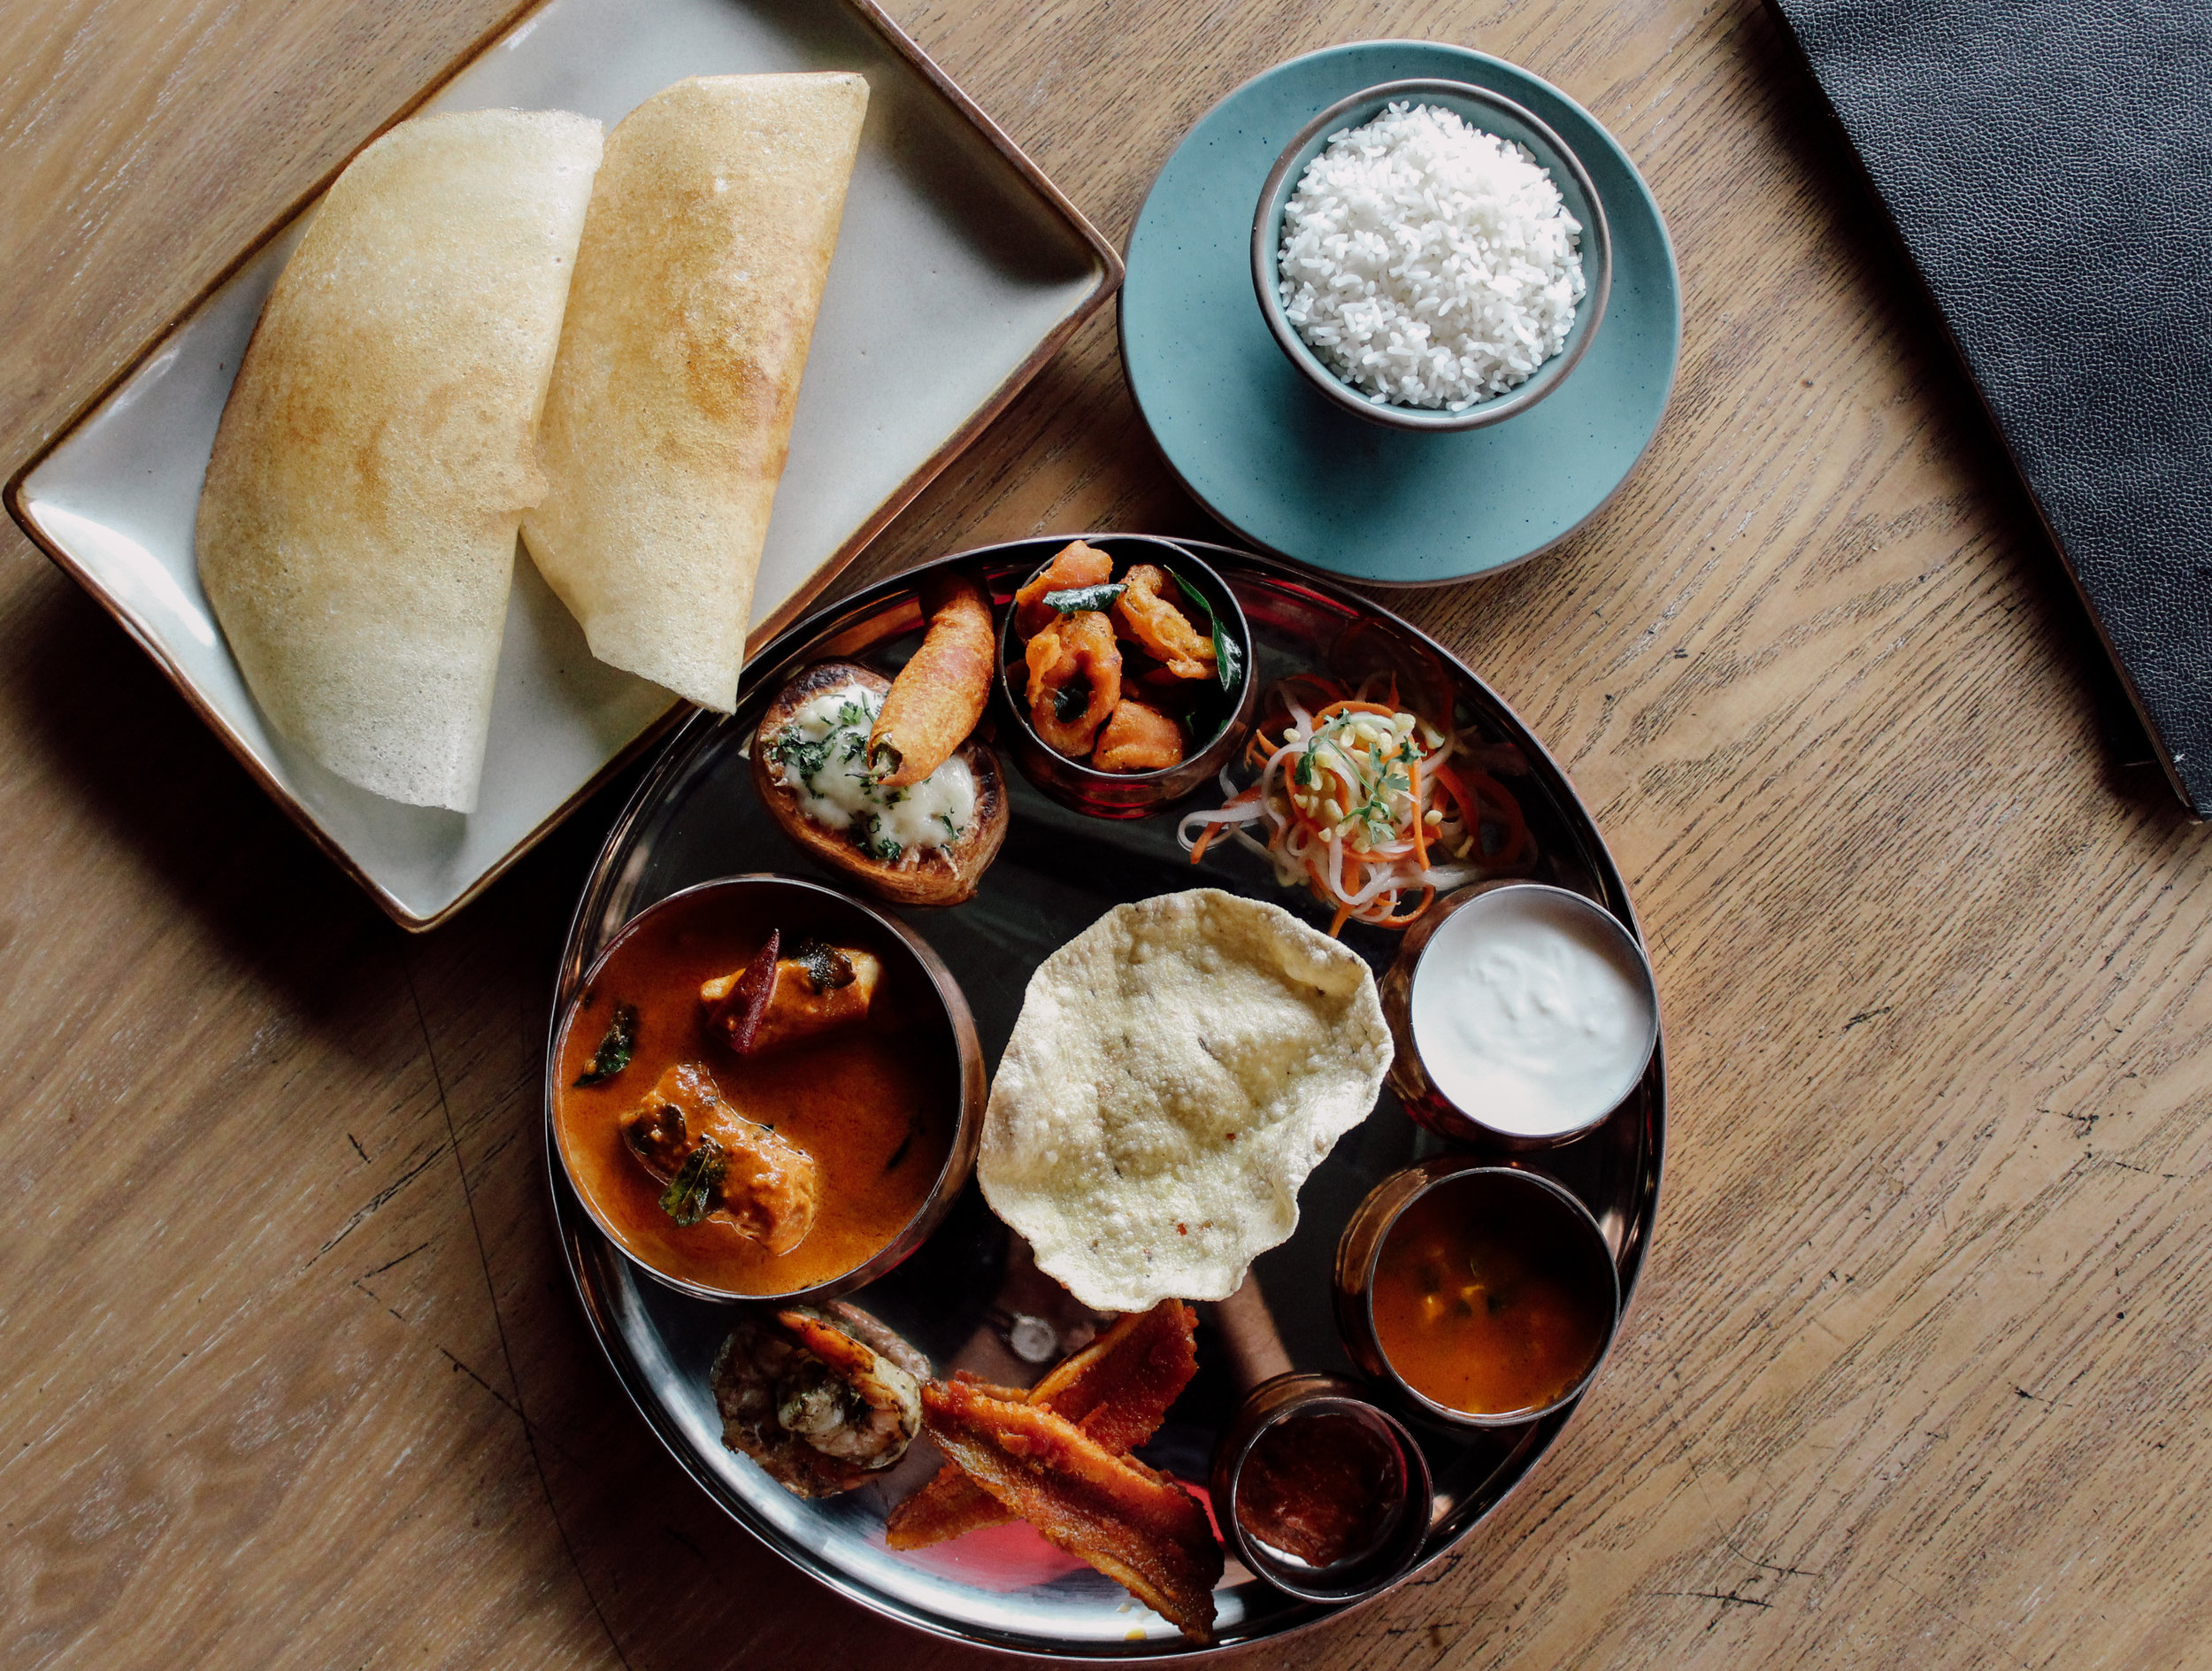 The table, the thali, the sides, and the menu within arm's reach. Hi, perfect setting.